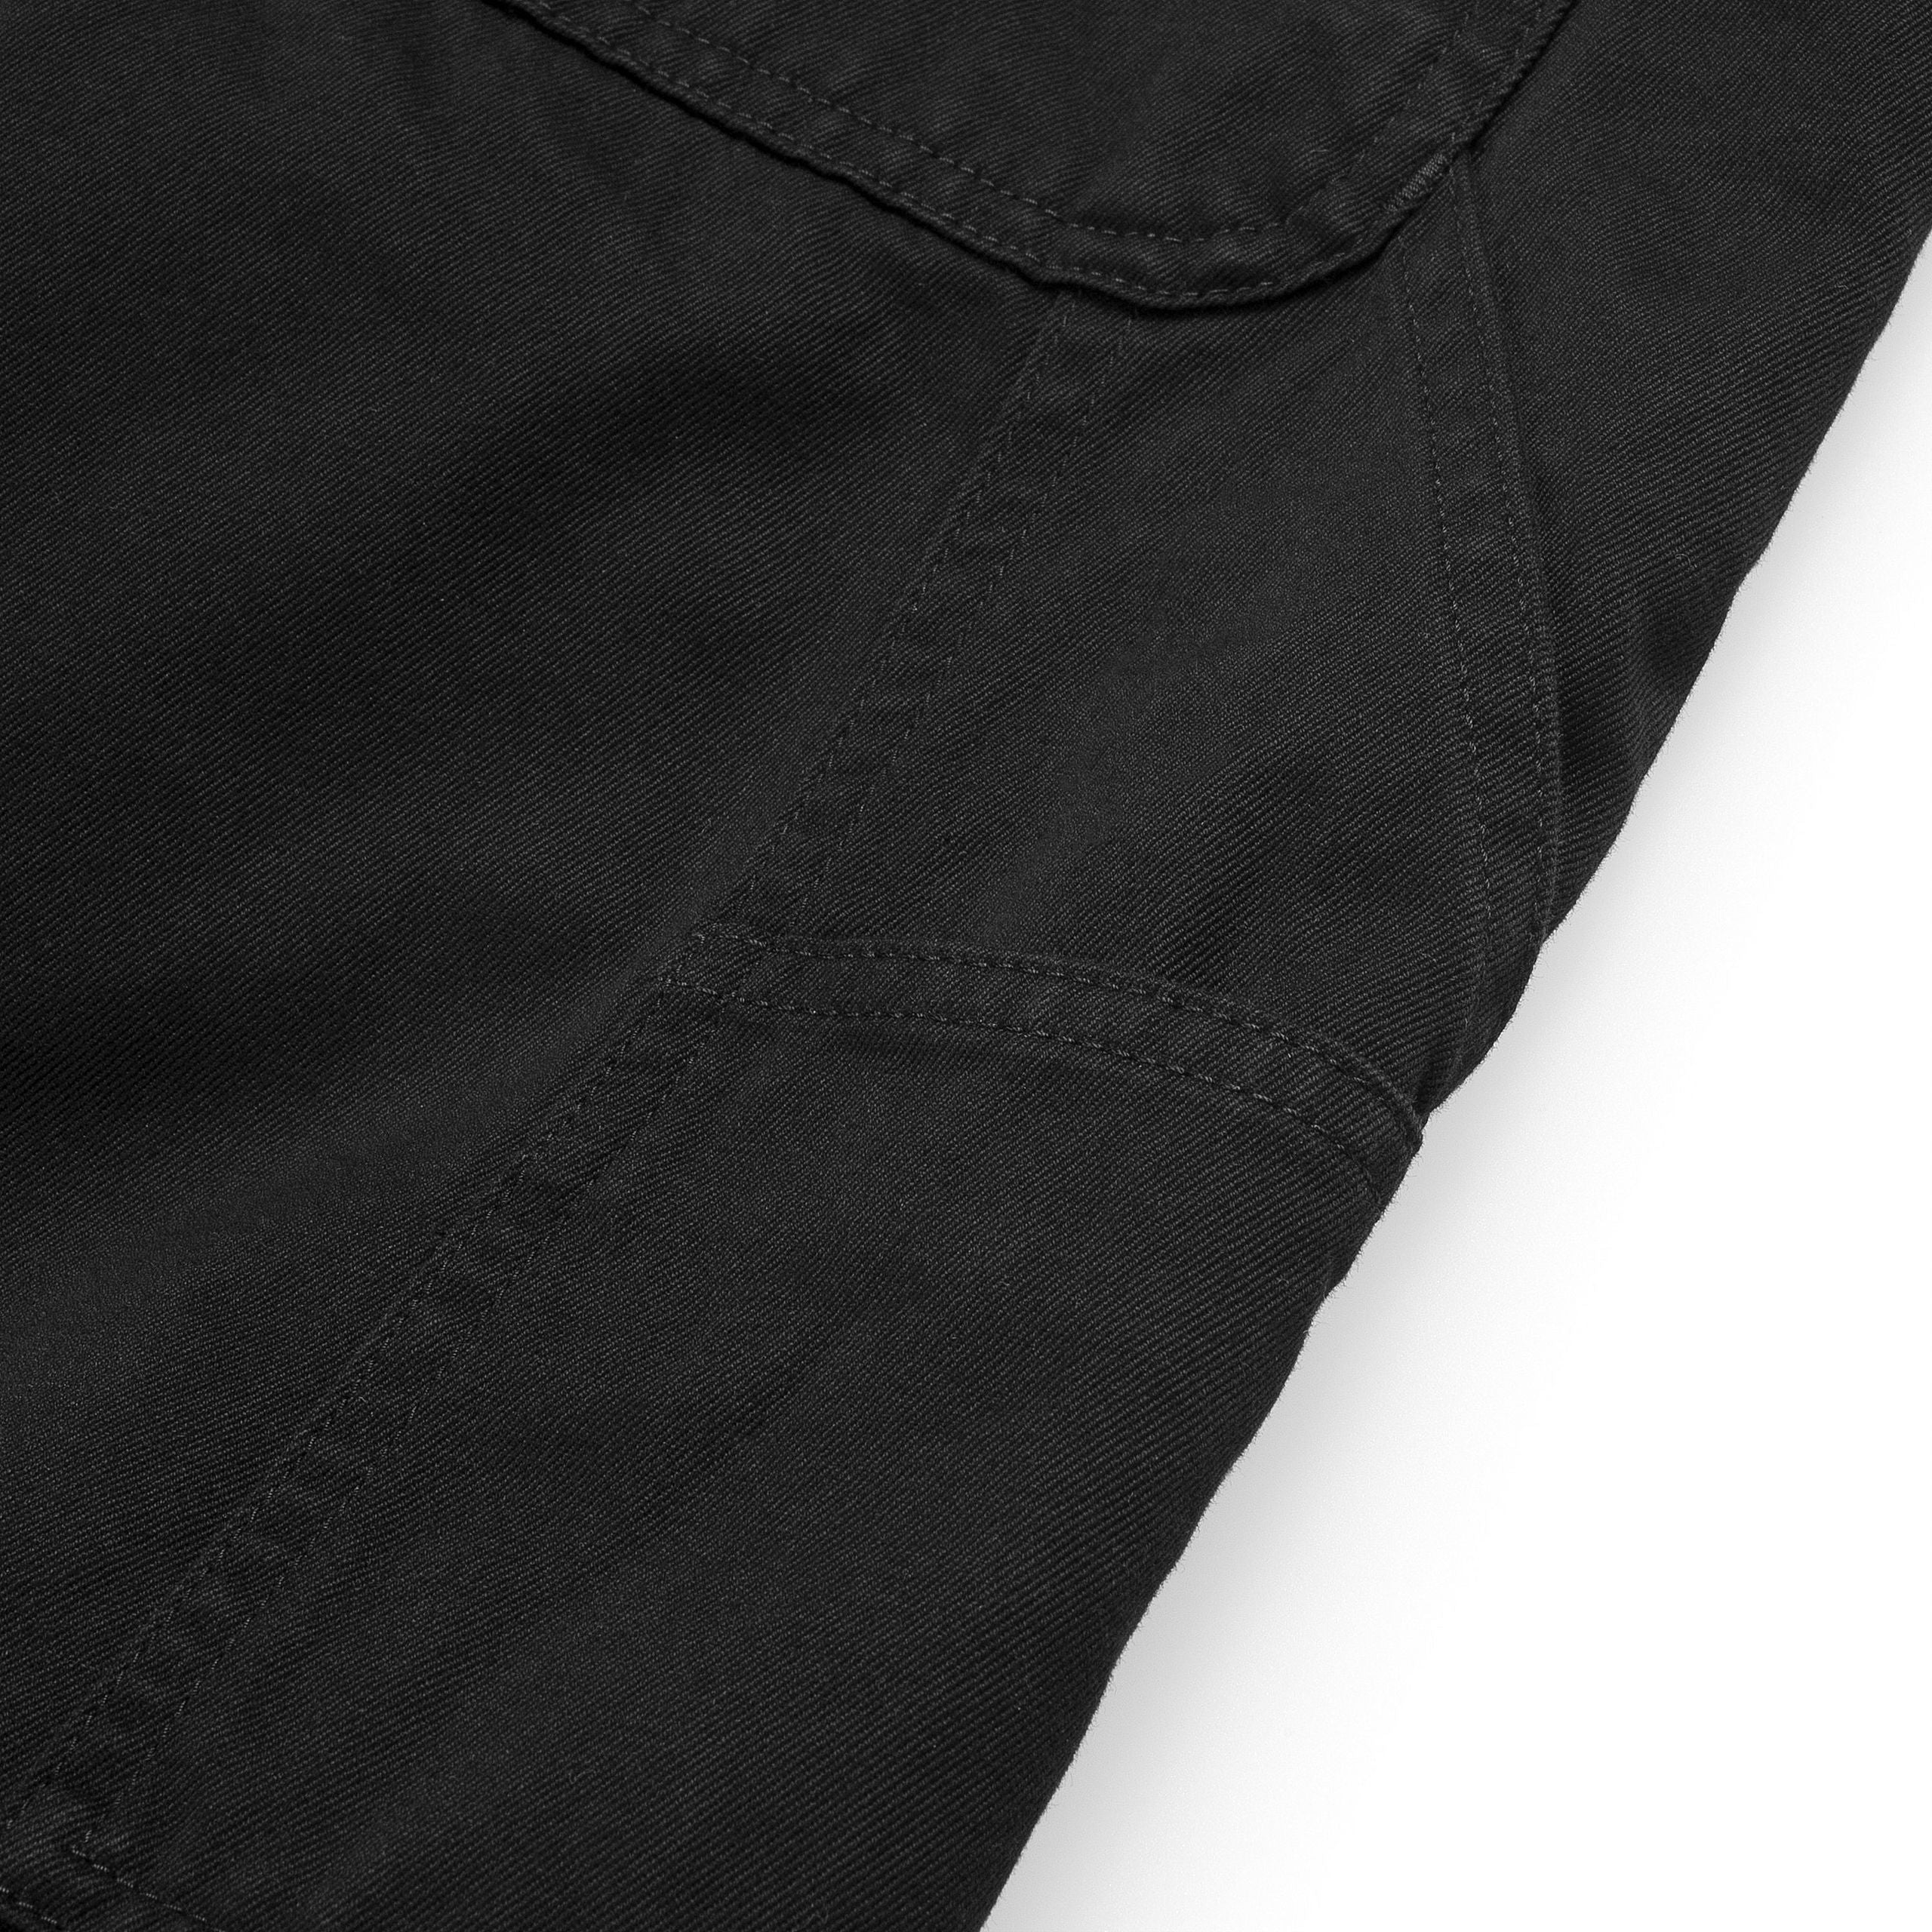 CARHARTT WIP RUCK SINGLE KNEE SHORT